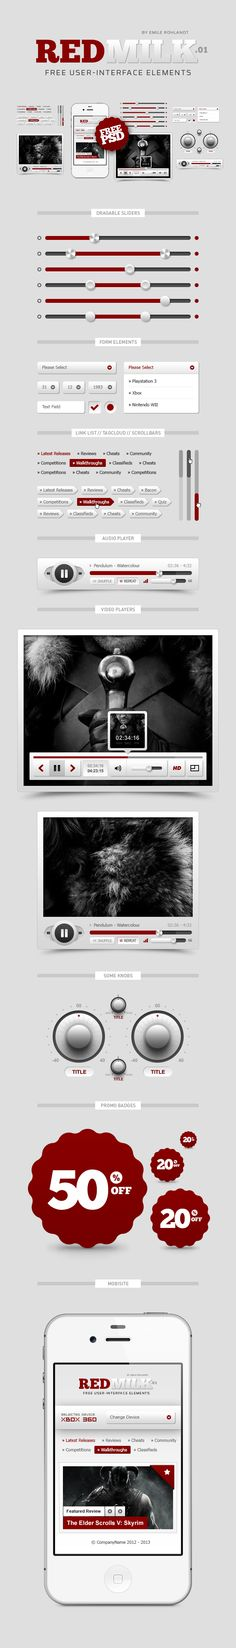 REDMILK FREE #UI Elements (PSD) by Emile Rohlandt, via #Behance #freebie